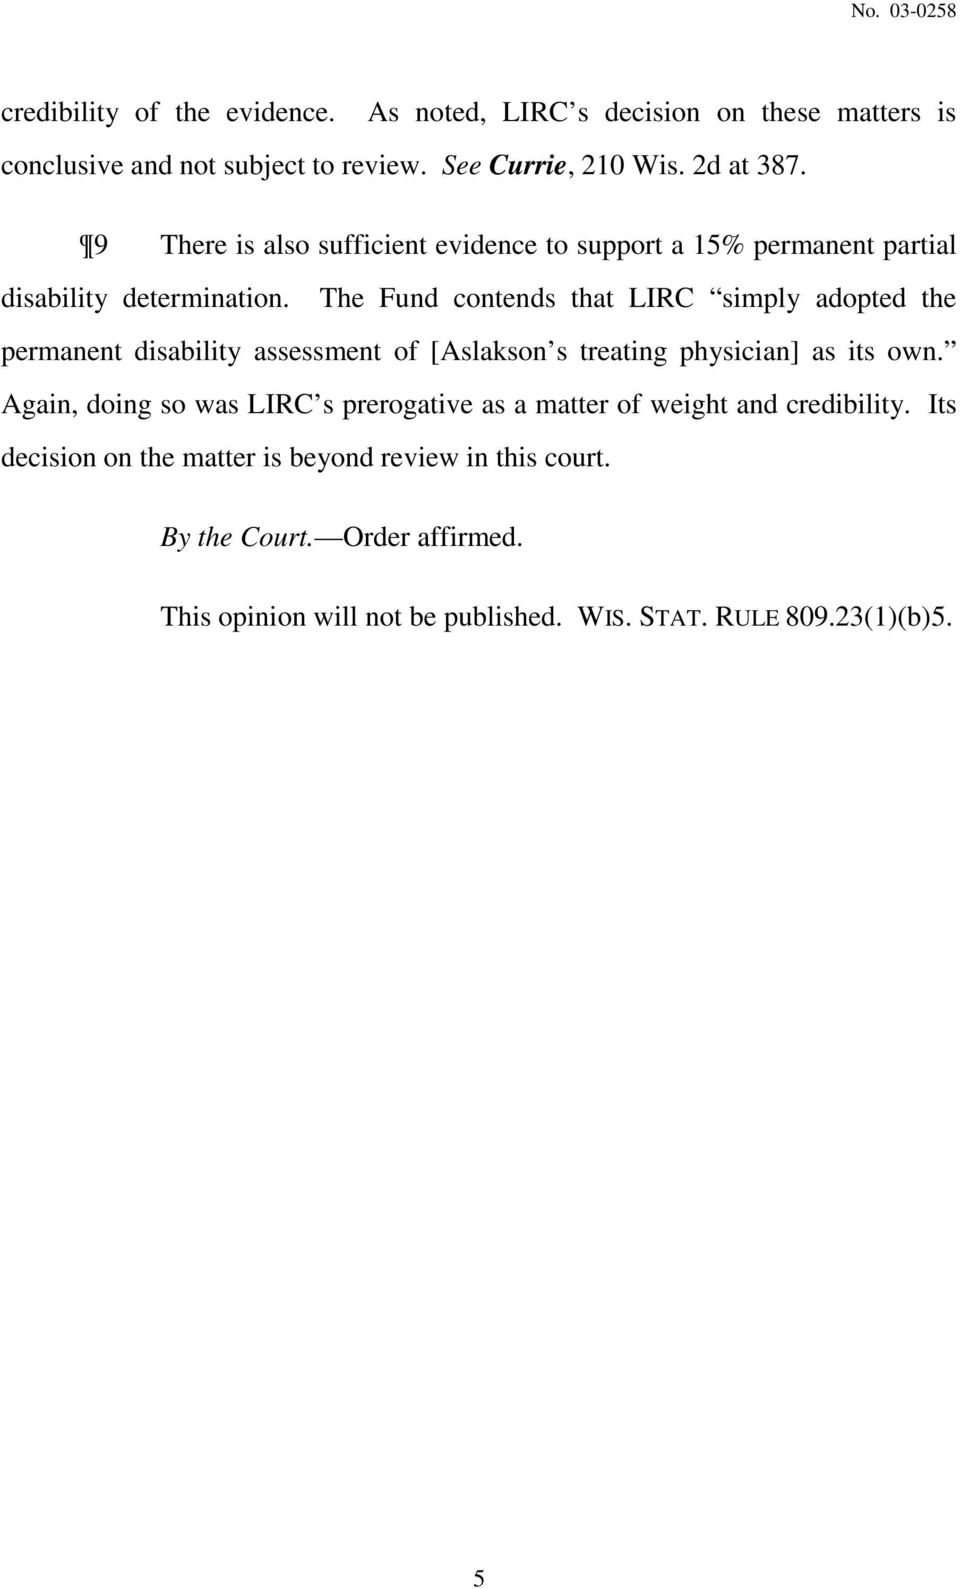 The Fund contends that LIRC simply adopted the permanent disability assessment of [Aslakson s treating physician] as its own.